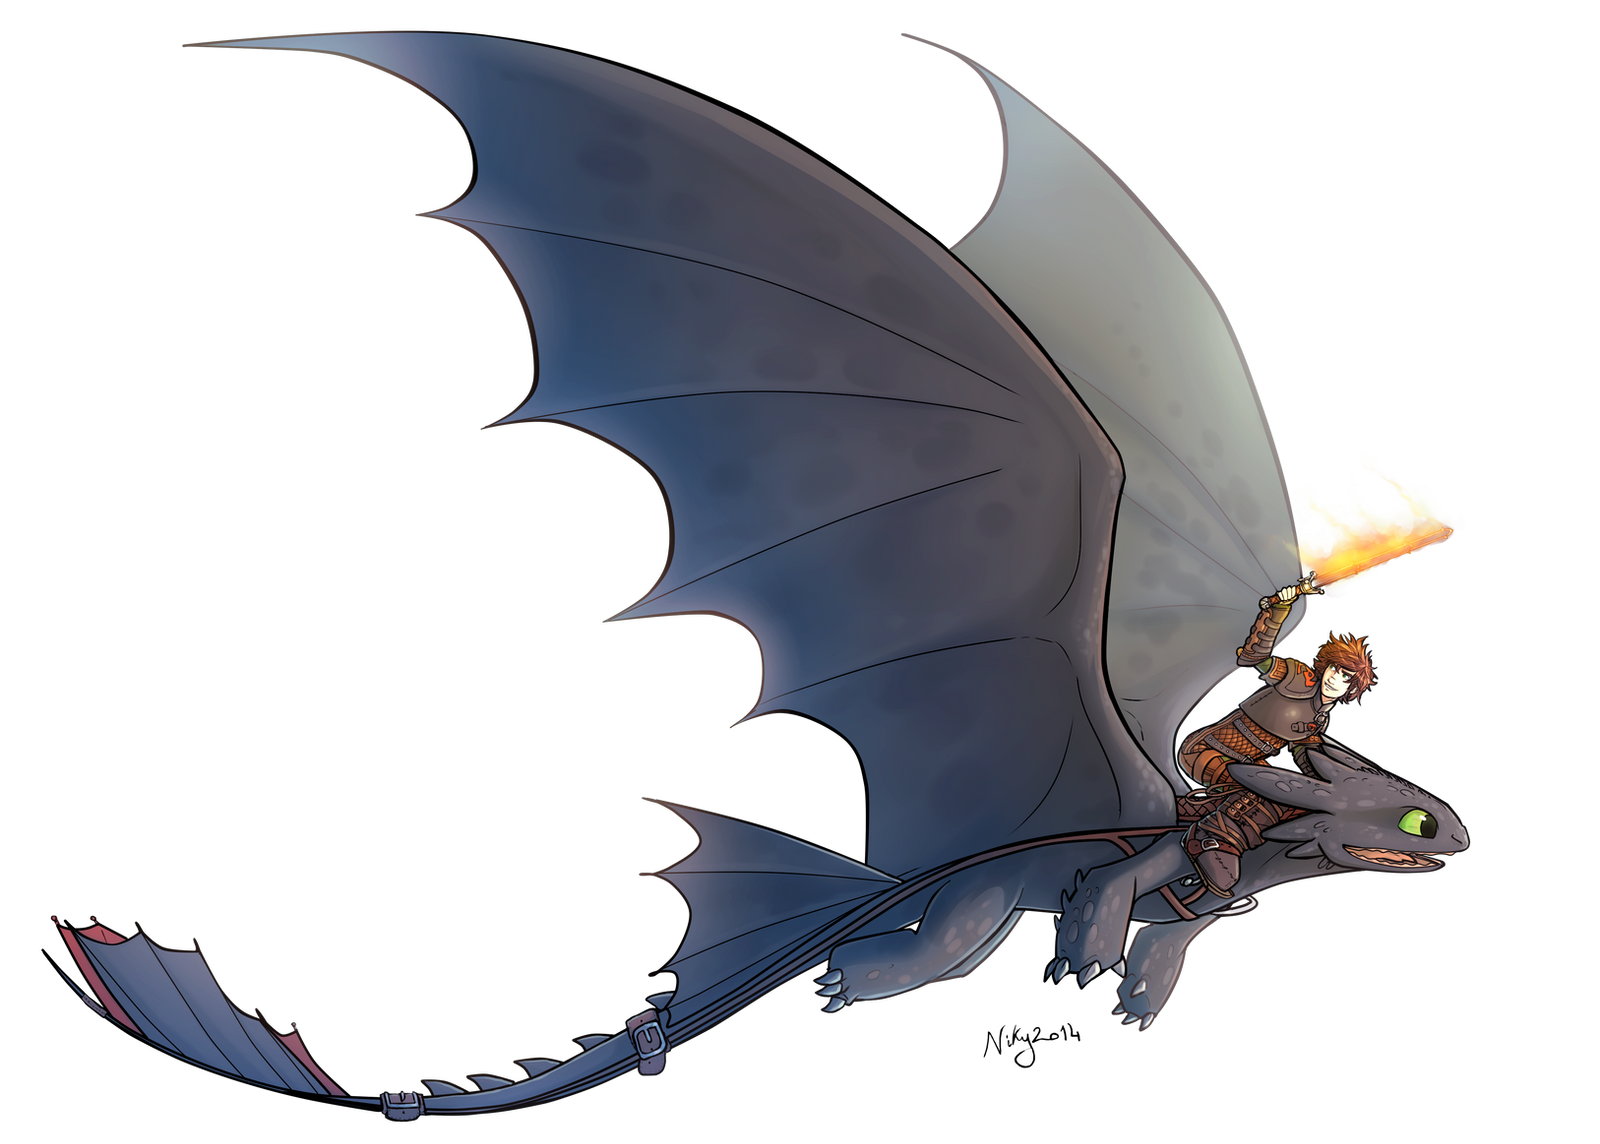 Httyd 2 Hiccup and Toothless by MatildaDavidson on DeviantArt